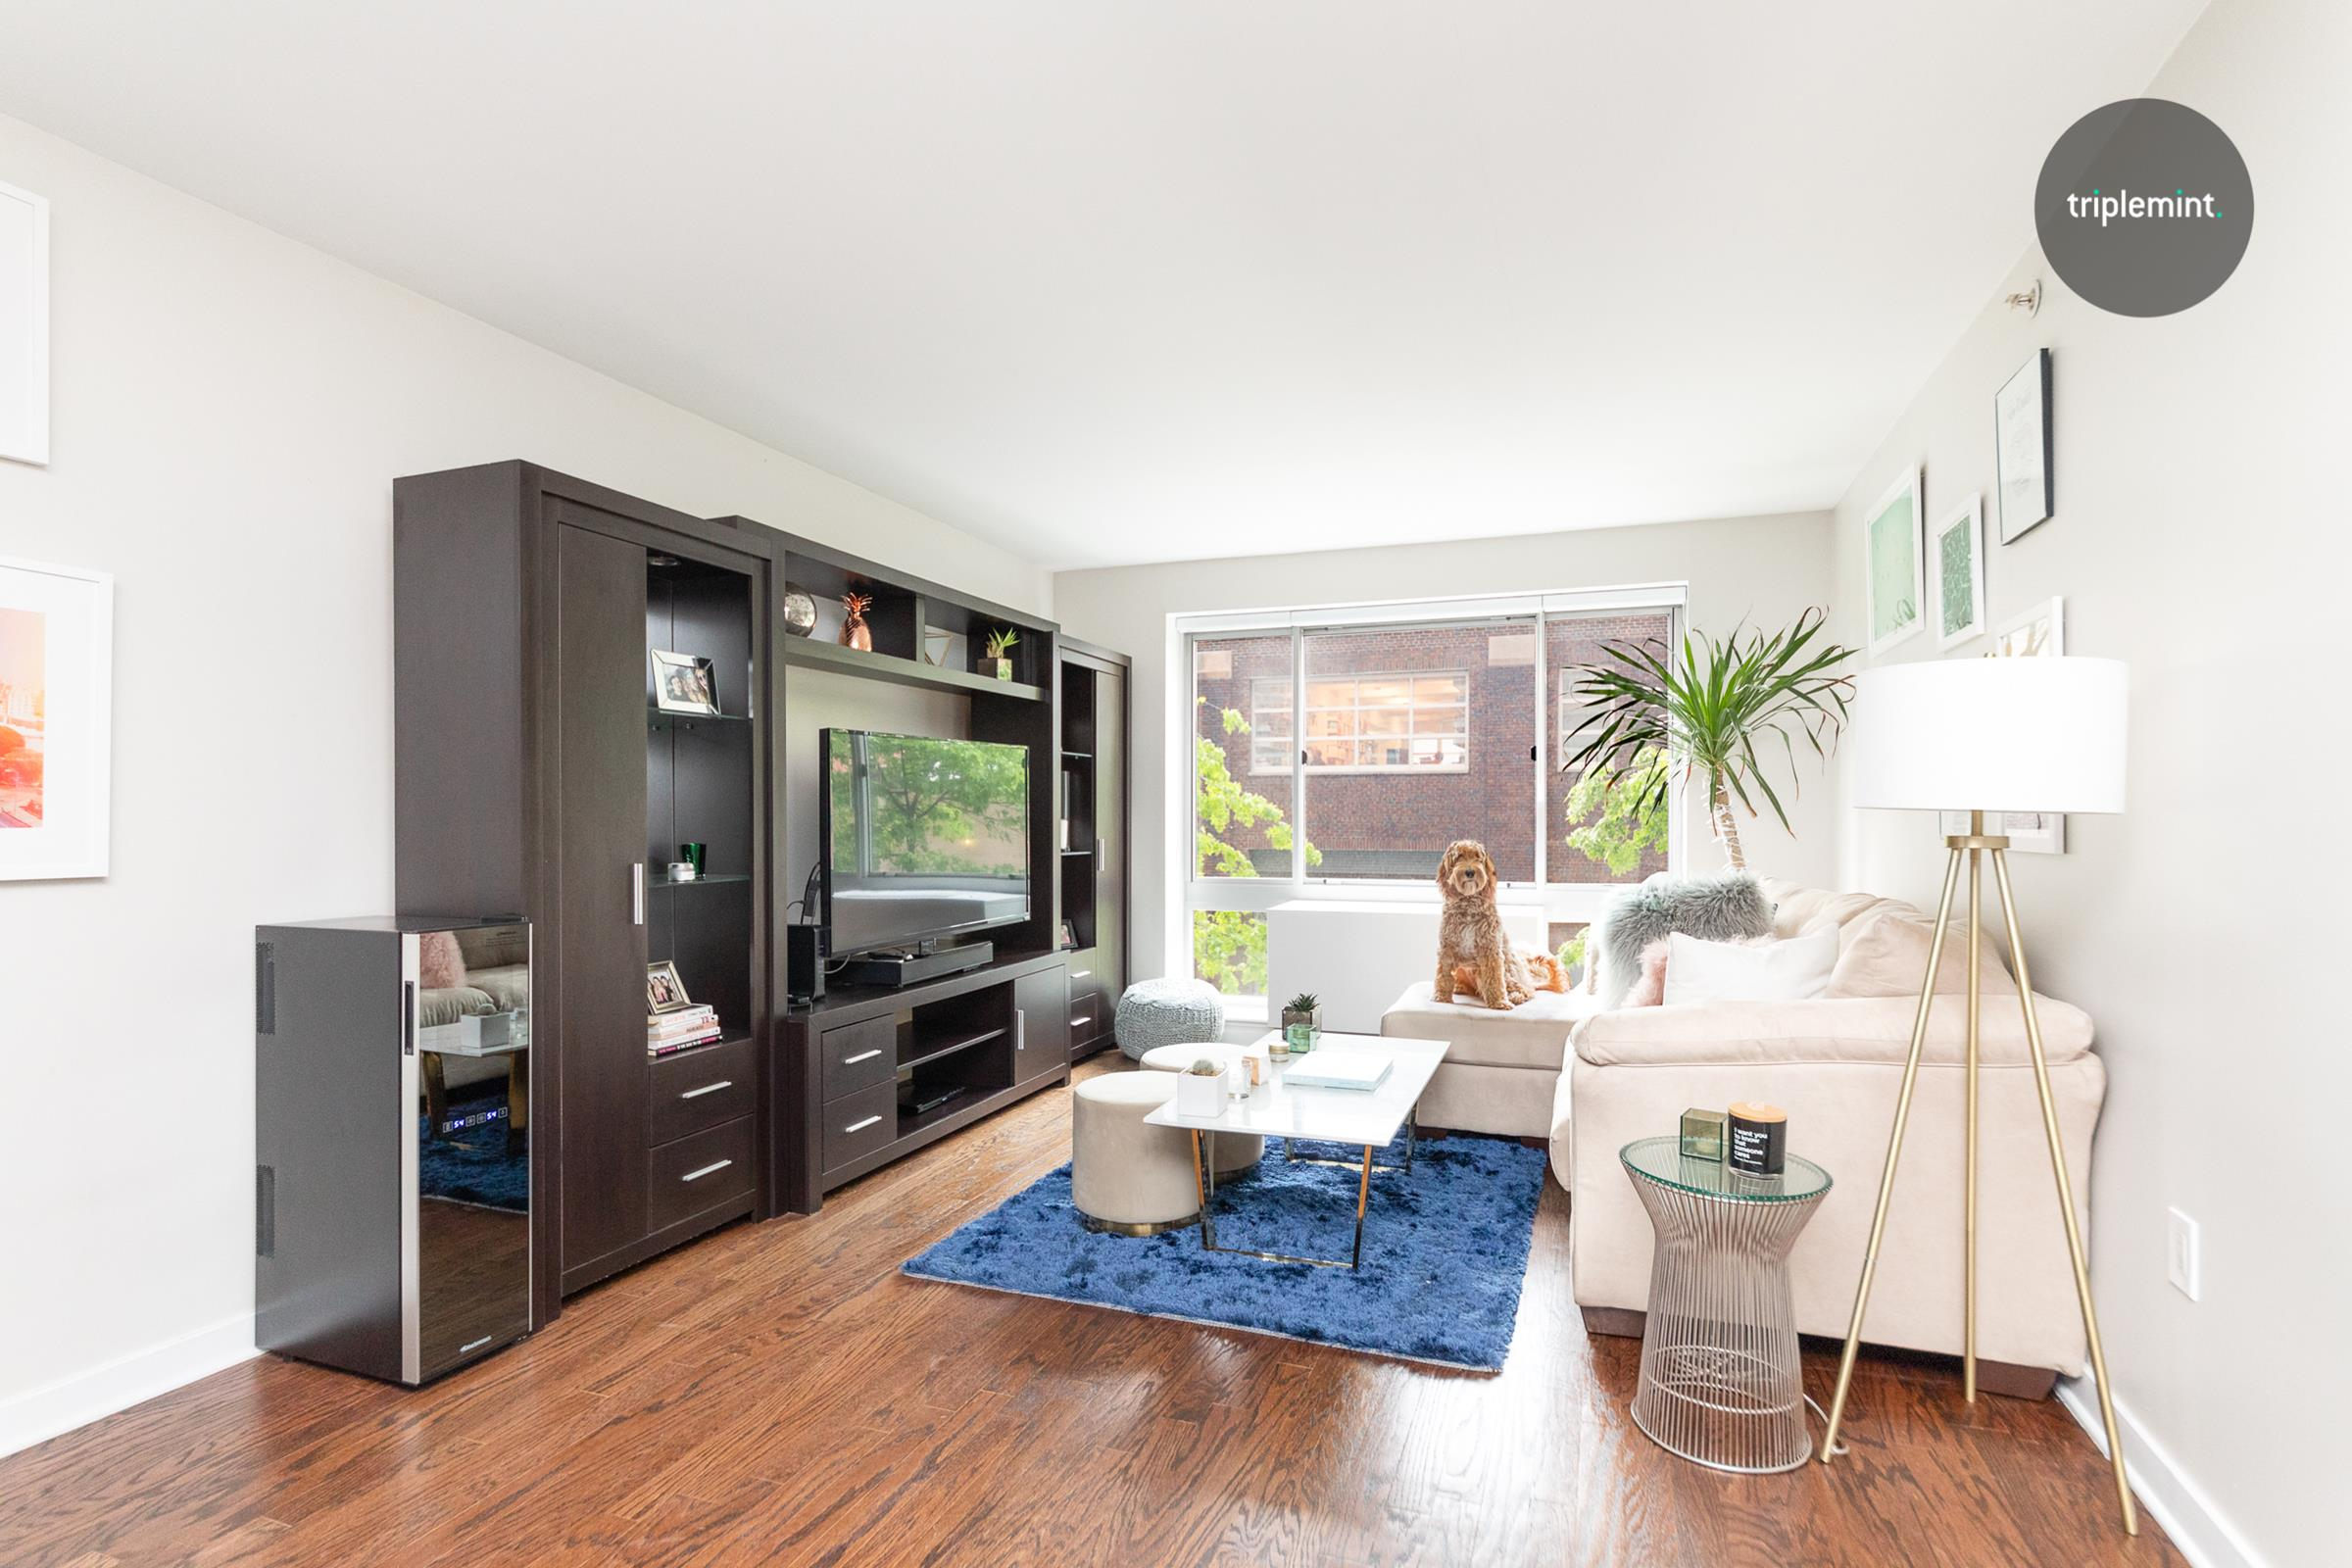 This bright, quiet and spacious one bedroom home is located in a 24-hour, full-service doorman building in prime West Chelsea. The apartment faces 24th street (North) and is very quiet  with tree lined views from all the windows. When you enter this tranquil apartment, you will be greeted with a large open floor plan. The oversized kitchen features granite countertops, full-size stainless steel appliances, and plenty of storage. The entree foyer has two closets, and one closet includes a washer/dryer. The large bathroom is in great renovated condition with plenty of storage both above and below the sink.The living room is large enough for a couch and dining table. Floor-to-ceiling windows overlook the art galleries on 24th street, which allows for great light and tranquillity. The extra large bedroom comfortably fits a king-sized bed, end tables, a dresser, and a chair. The bedroom closet can accommodate a generous wardrobe. You don't need to leave the building to find what you are looking for. The gym has endless equipment from treadmills, ellipticals, pilates machines, weights, and more. The lounge sits above the gym and includes free WiFi. You can escape to read a book, work, or host a private party. The staff is friendly and attentive to all of the residents, and they always go above and beyond. An incredibly friendly community vibe resonates throughout the entire building. 555 West 23rd Street is a hidden haven in West Chelsea. With a stunning waterfall, enclosed atrium, and plant wall, every detail in the building's gorgeous lobby is meticulosity designed. Bike storage and a parking garage are attached to the building. This popular building is surrounded by galleries, the High Line, and an endless amount of restaurants and stores. Right at the end of 23rd Street sits one of the best dog parks in Chelsea and across the West Side Highway, you will find Chelsea Piers and a few parks. Situated just a few blocks from Hudson Yards, houses Neiman Marcus, Cartier, and